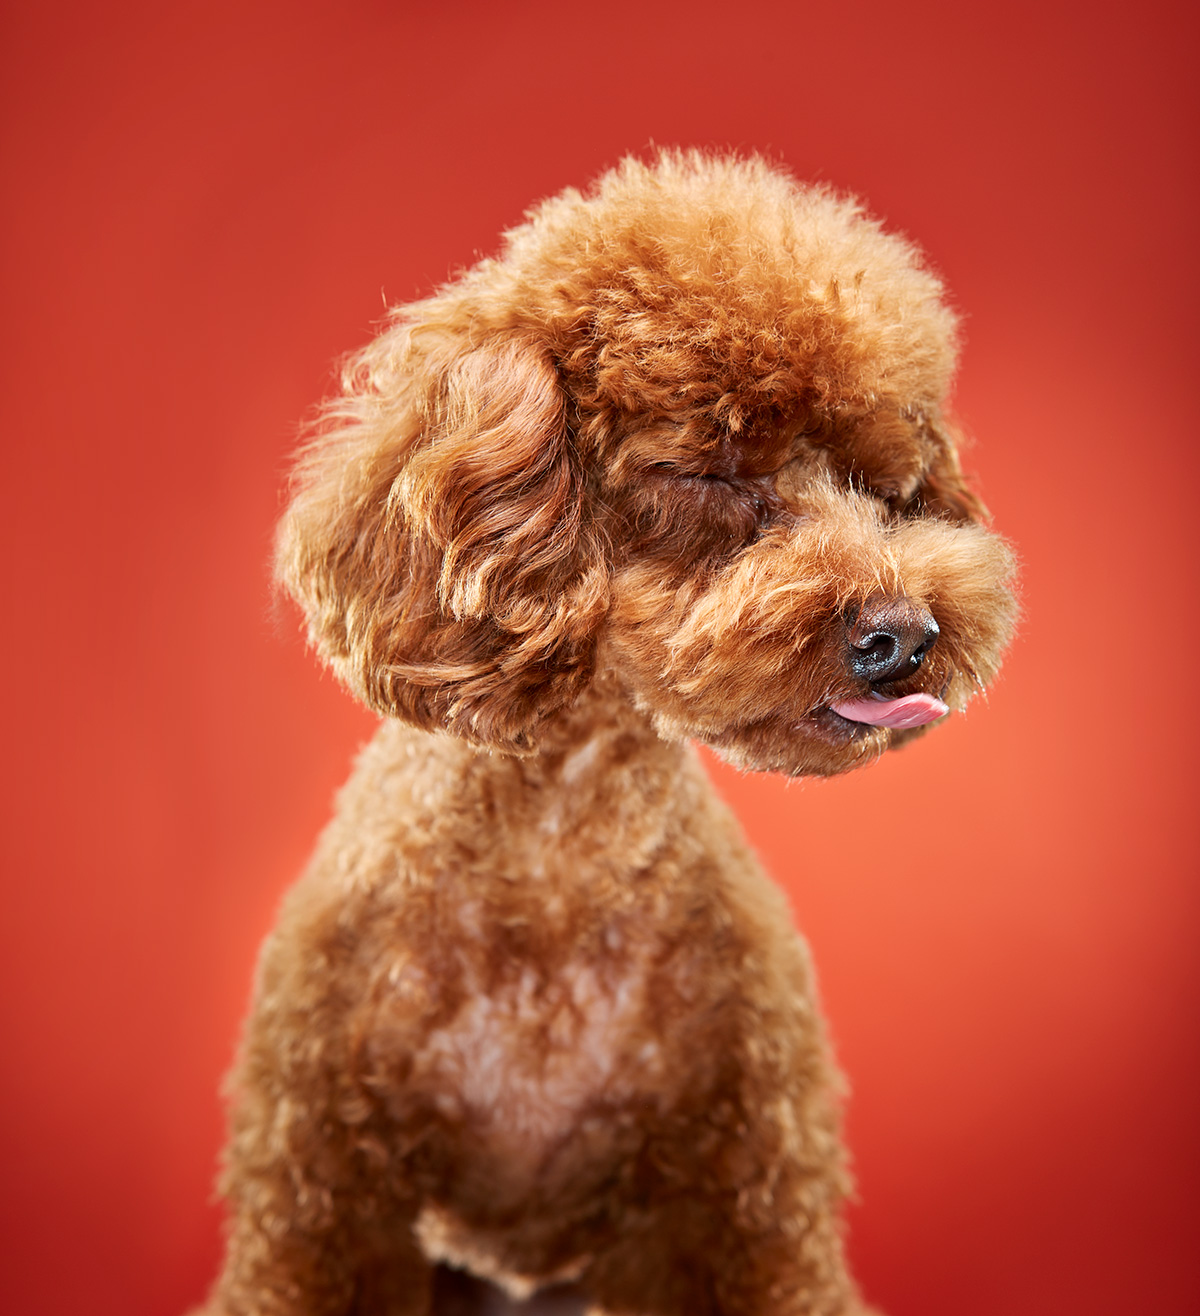 Pet Photography of Dog